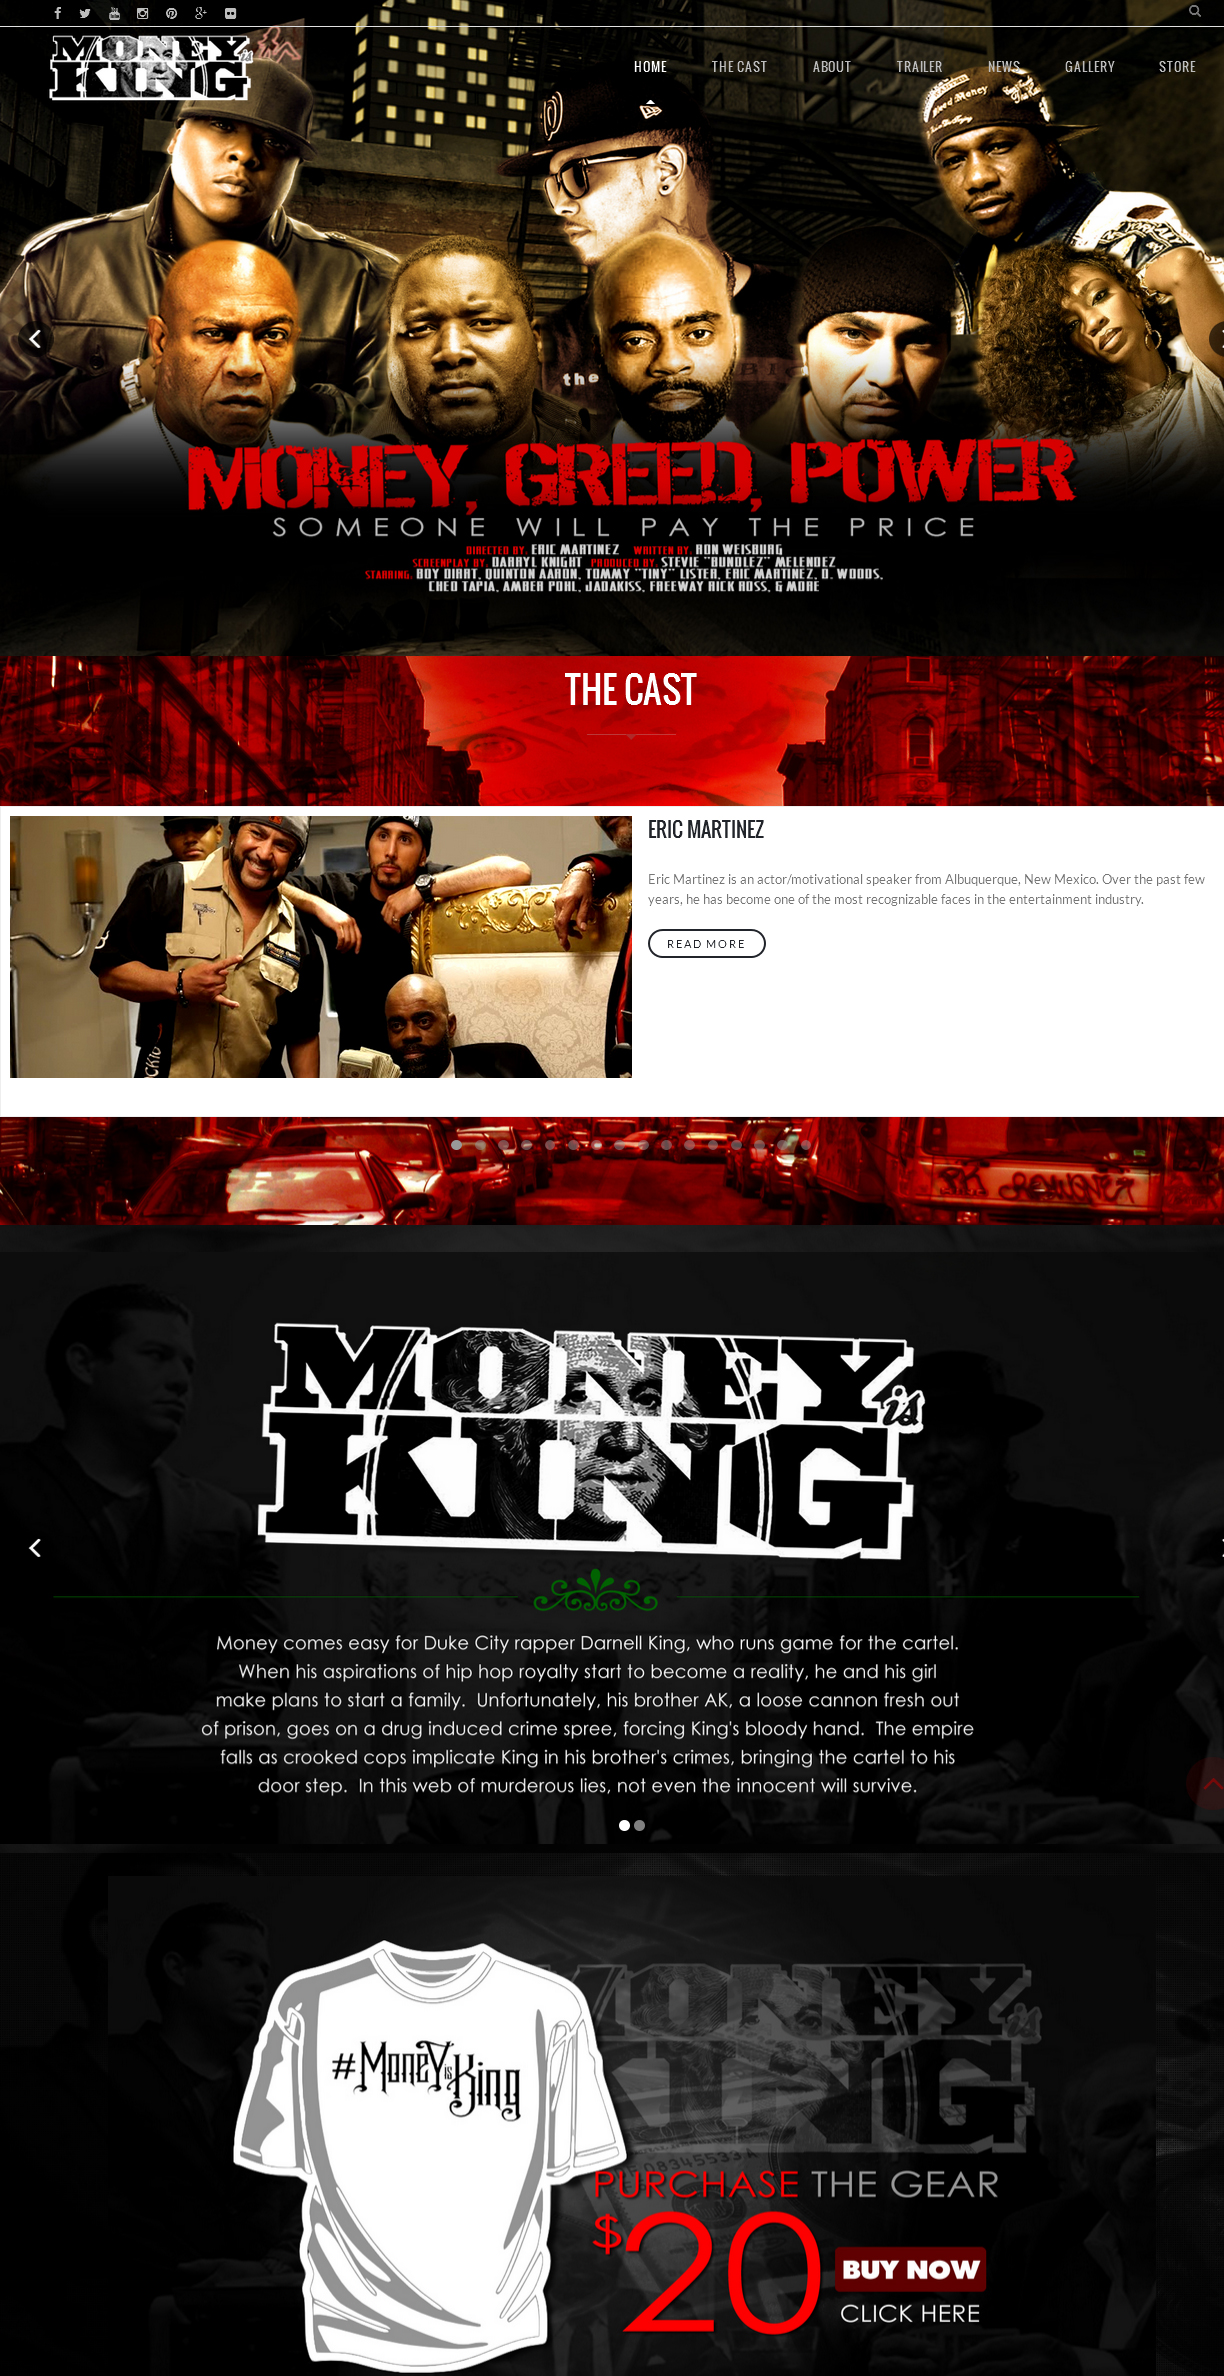 MIK LAYOUT Moneyisking.com Movie [Mobile/Desktop] Starring Quinton Aaron